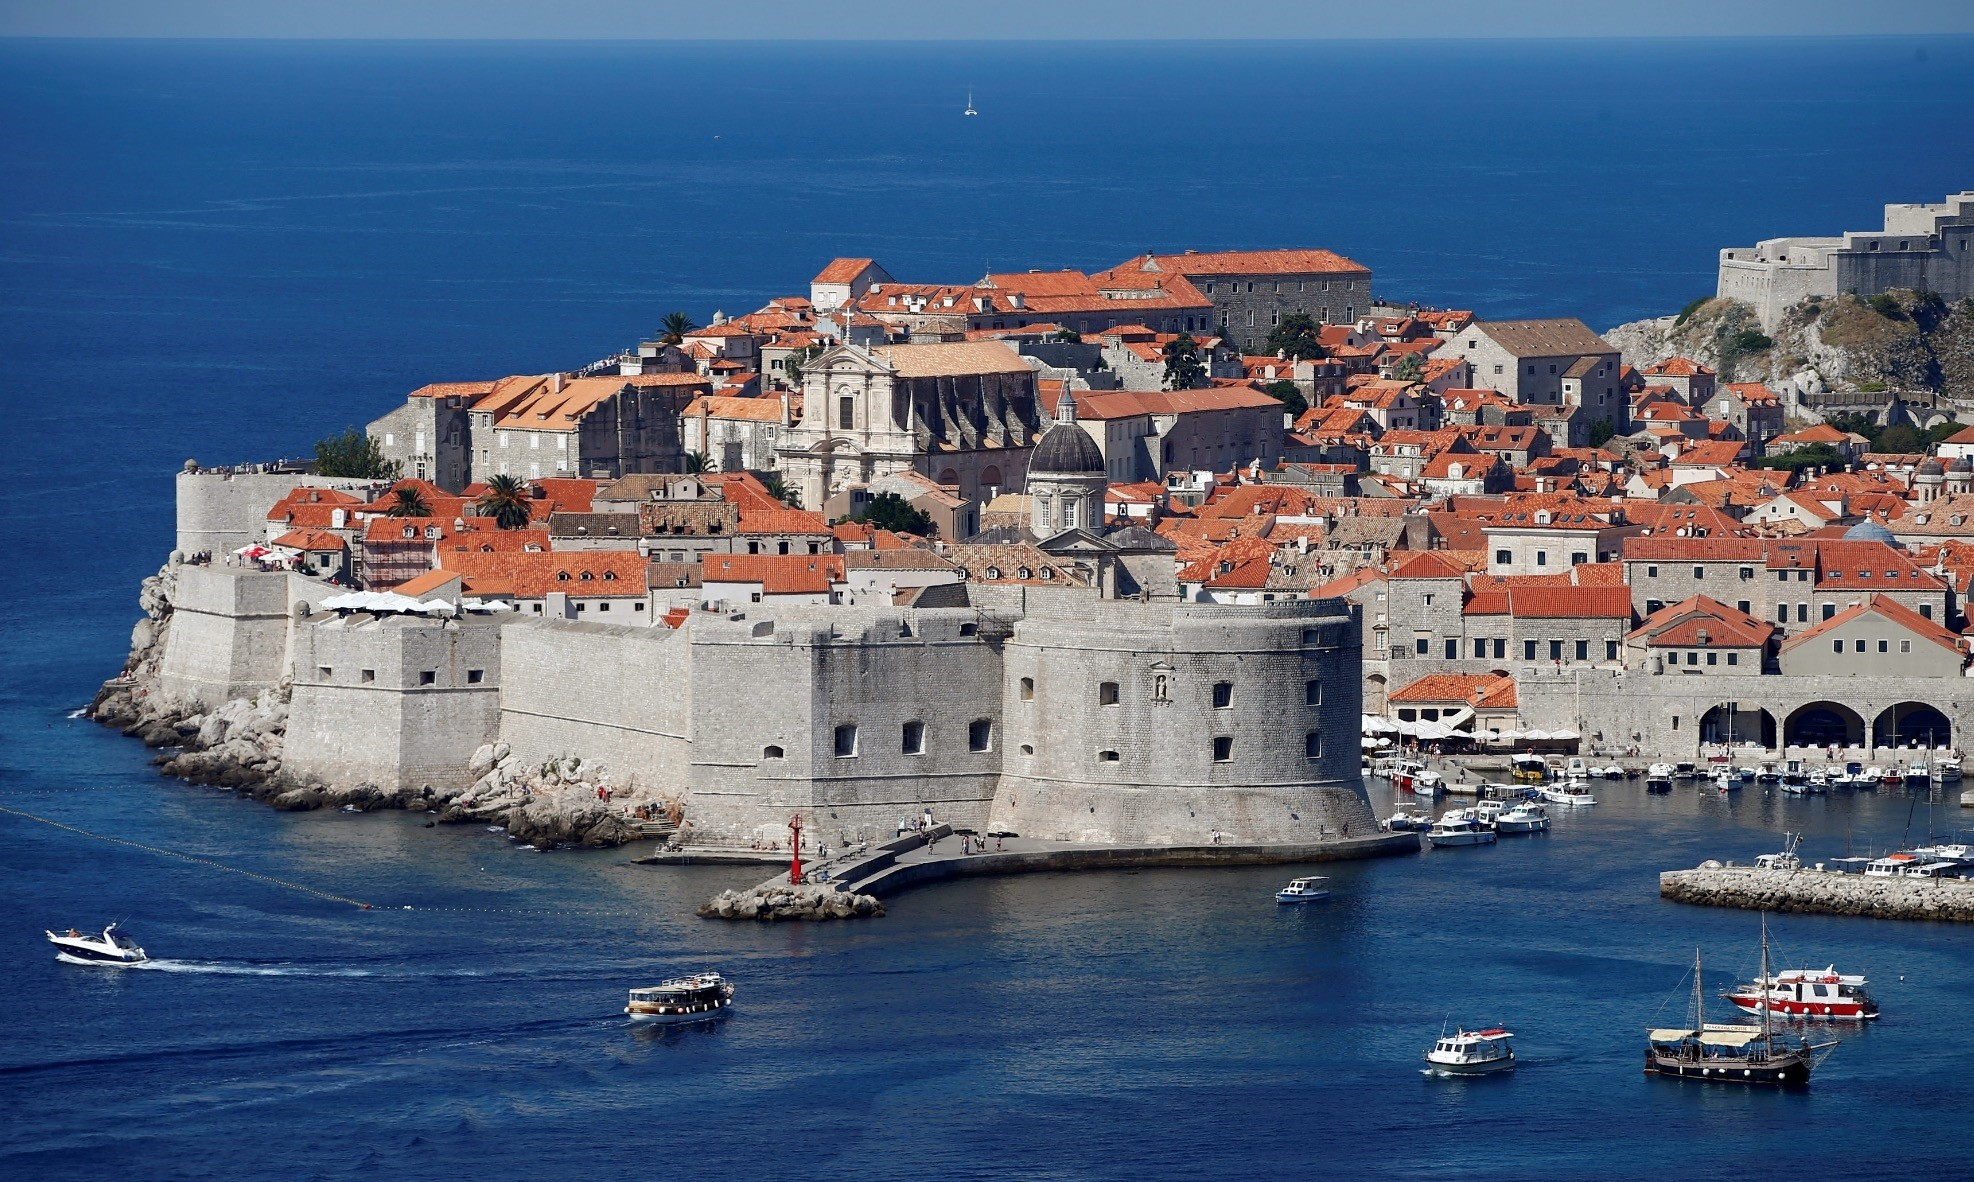 A general view of Croatiau2019s UNESCO protected medieval town of Dubrovnik.